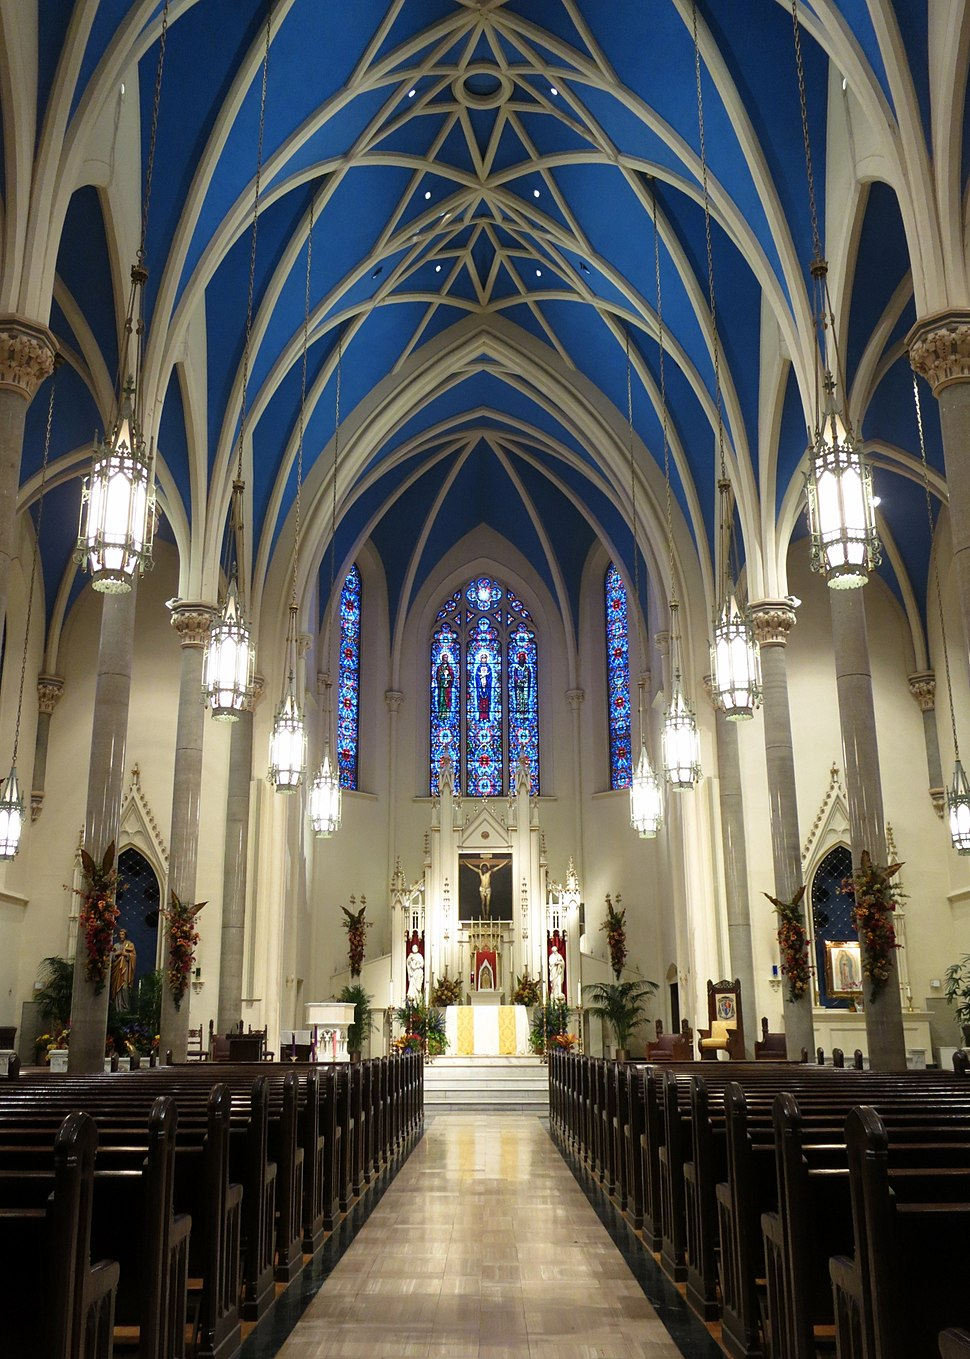 Cathedral of Saint Mary of the Immaculate Conception (Peoria, Illinois) - nave